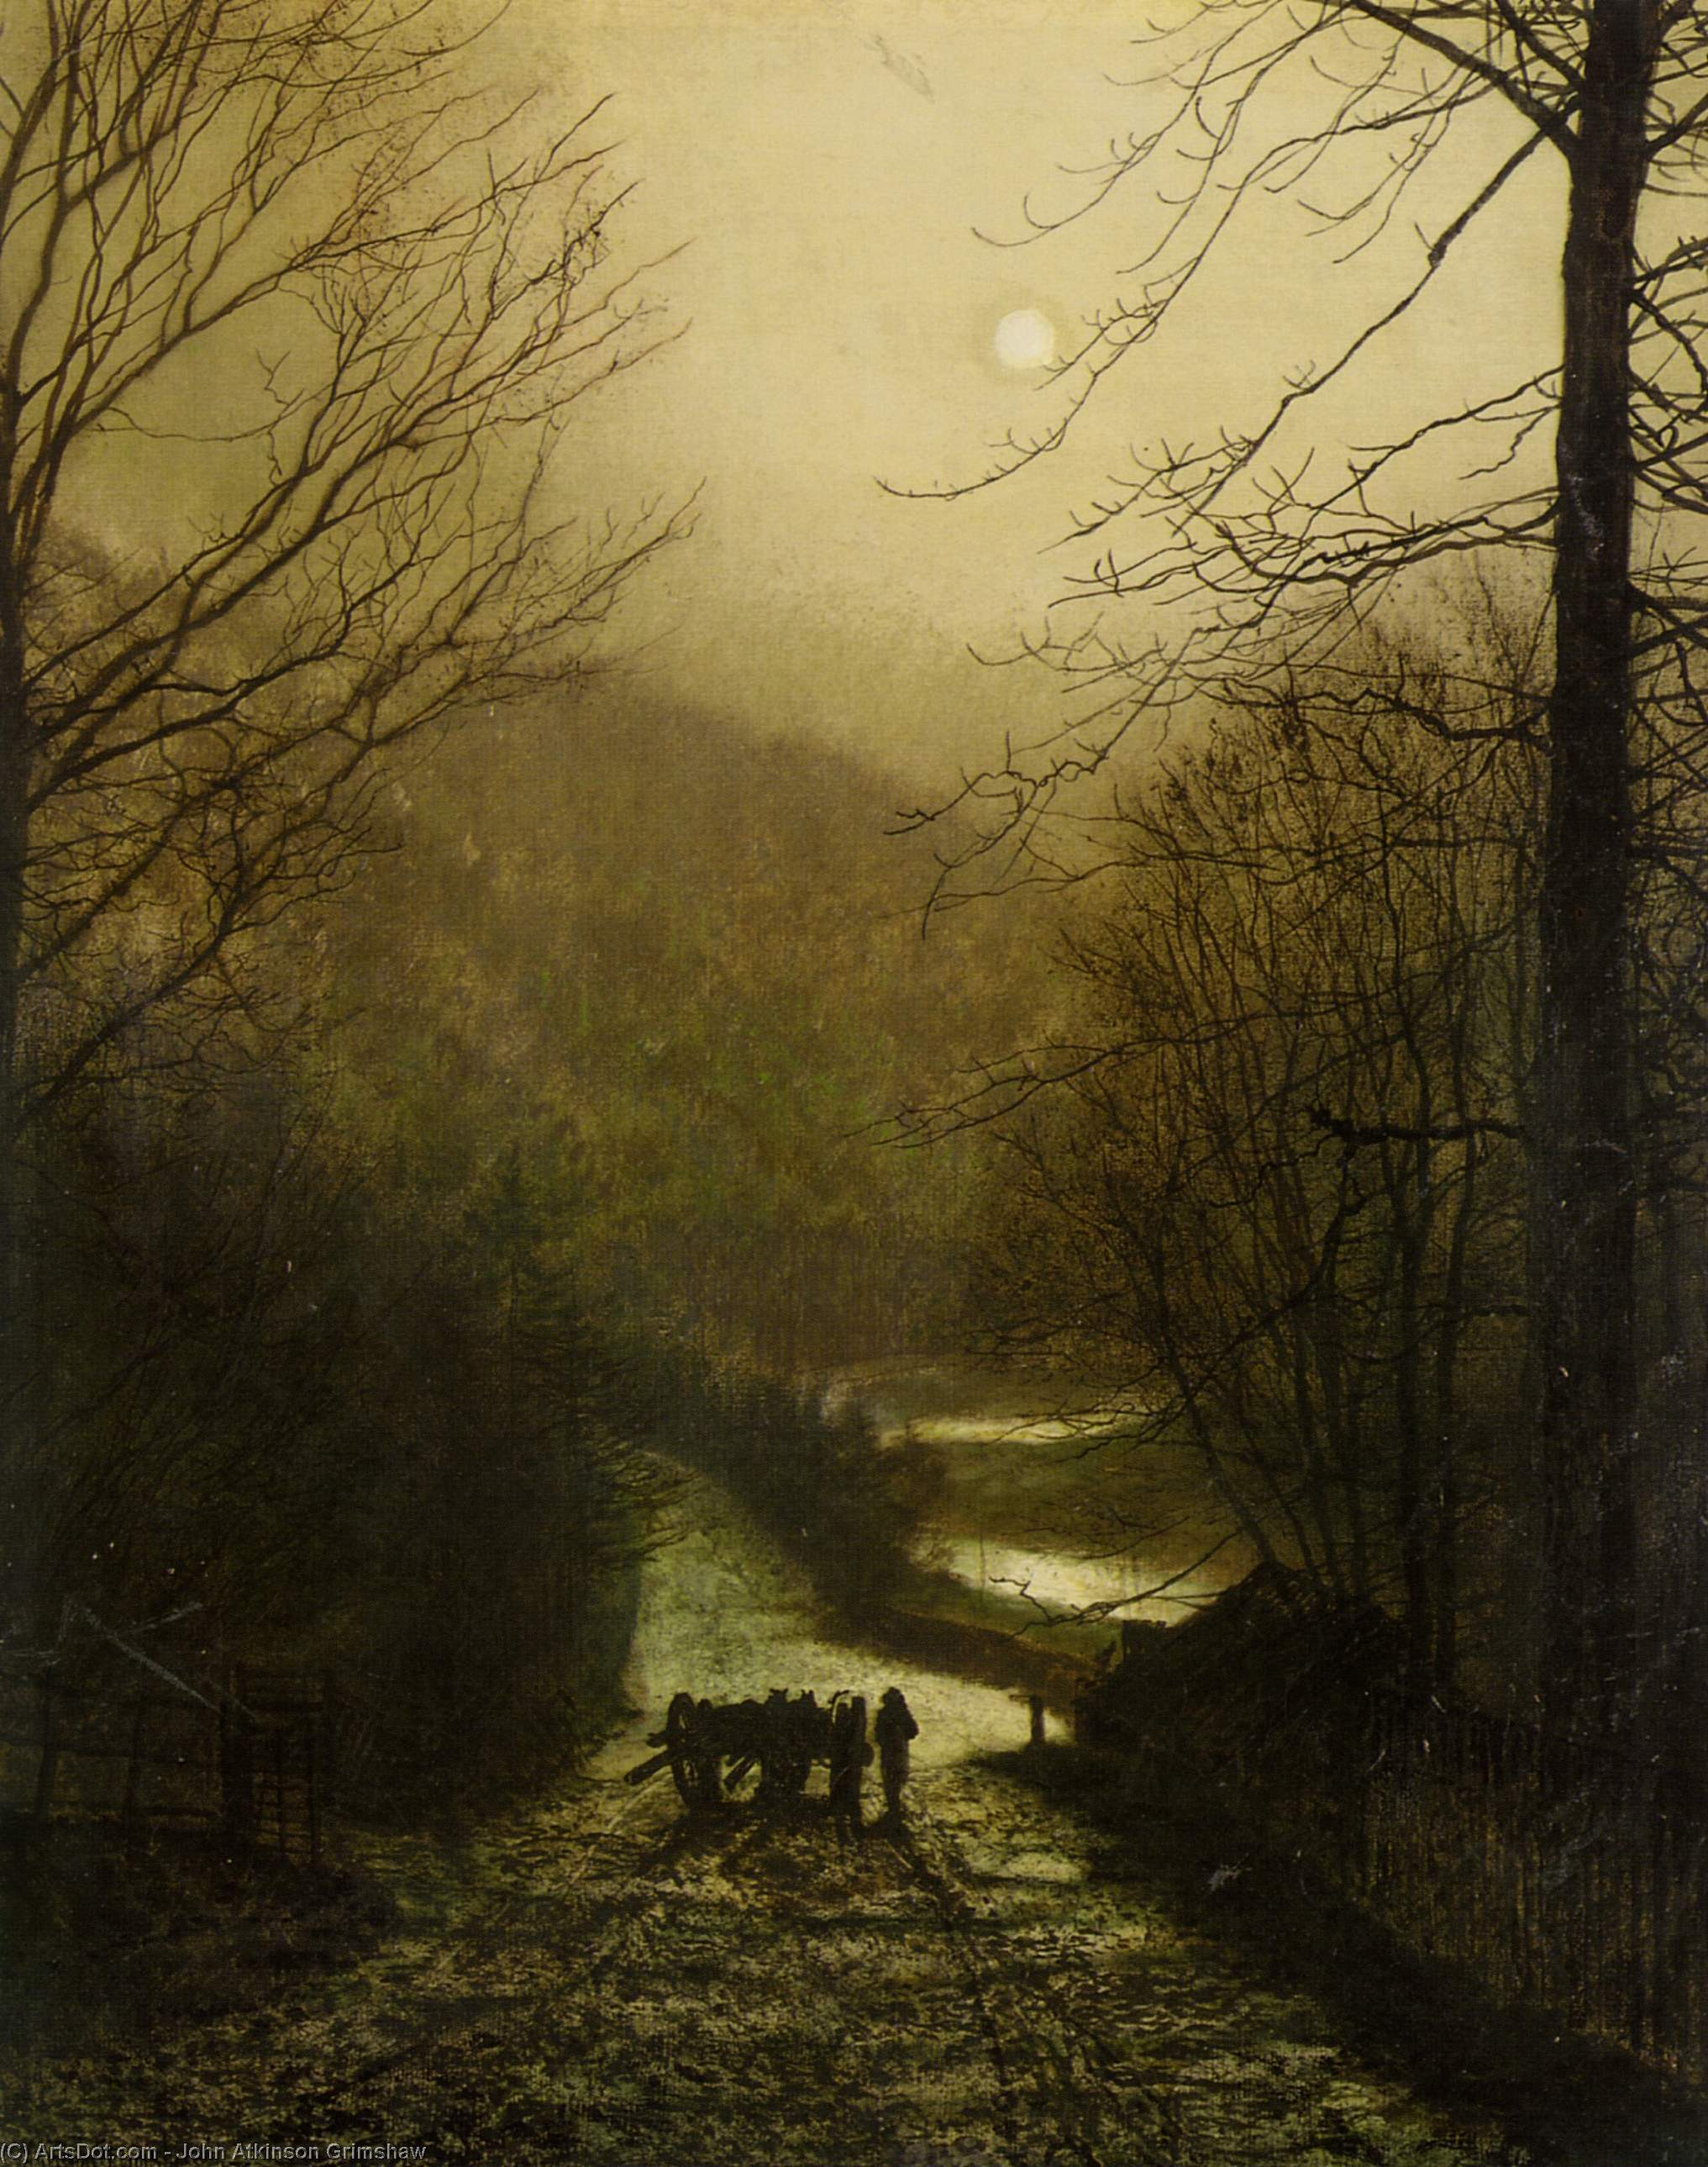 锐意谷士嘉堡附近, 油 通过 John Atkinson Grimshaw (1836-1893, United Kingdom)